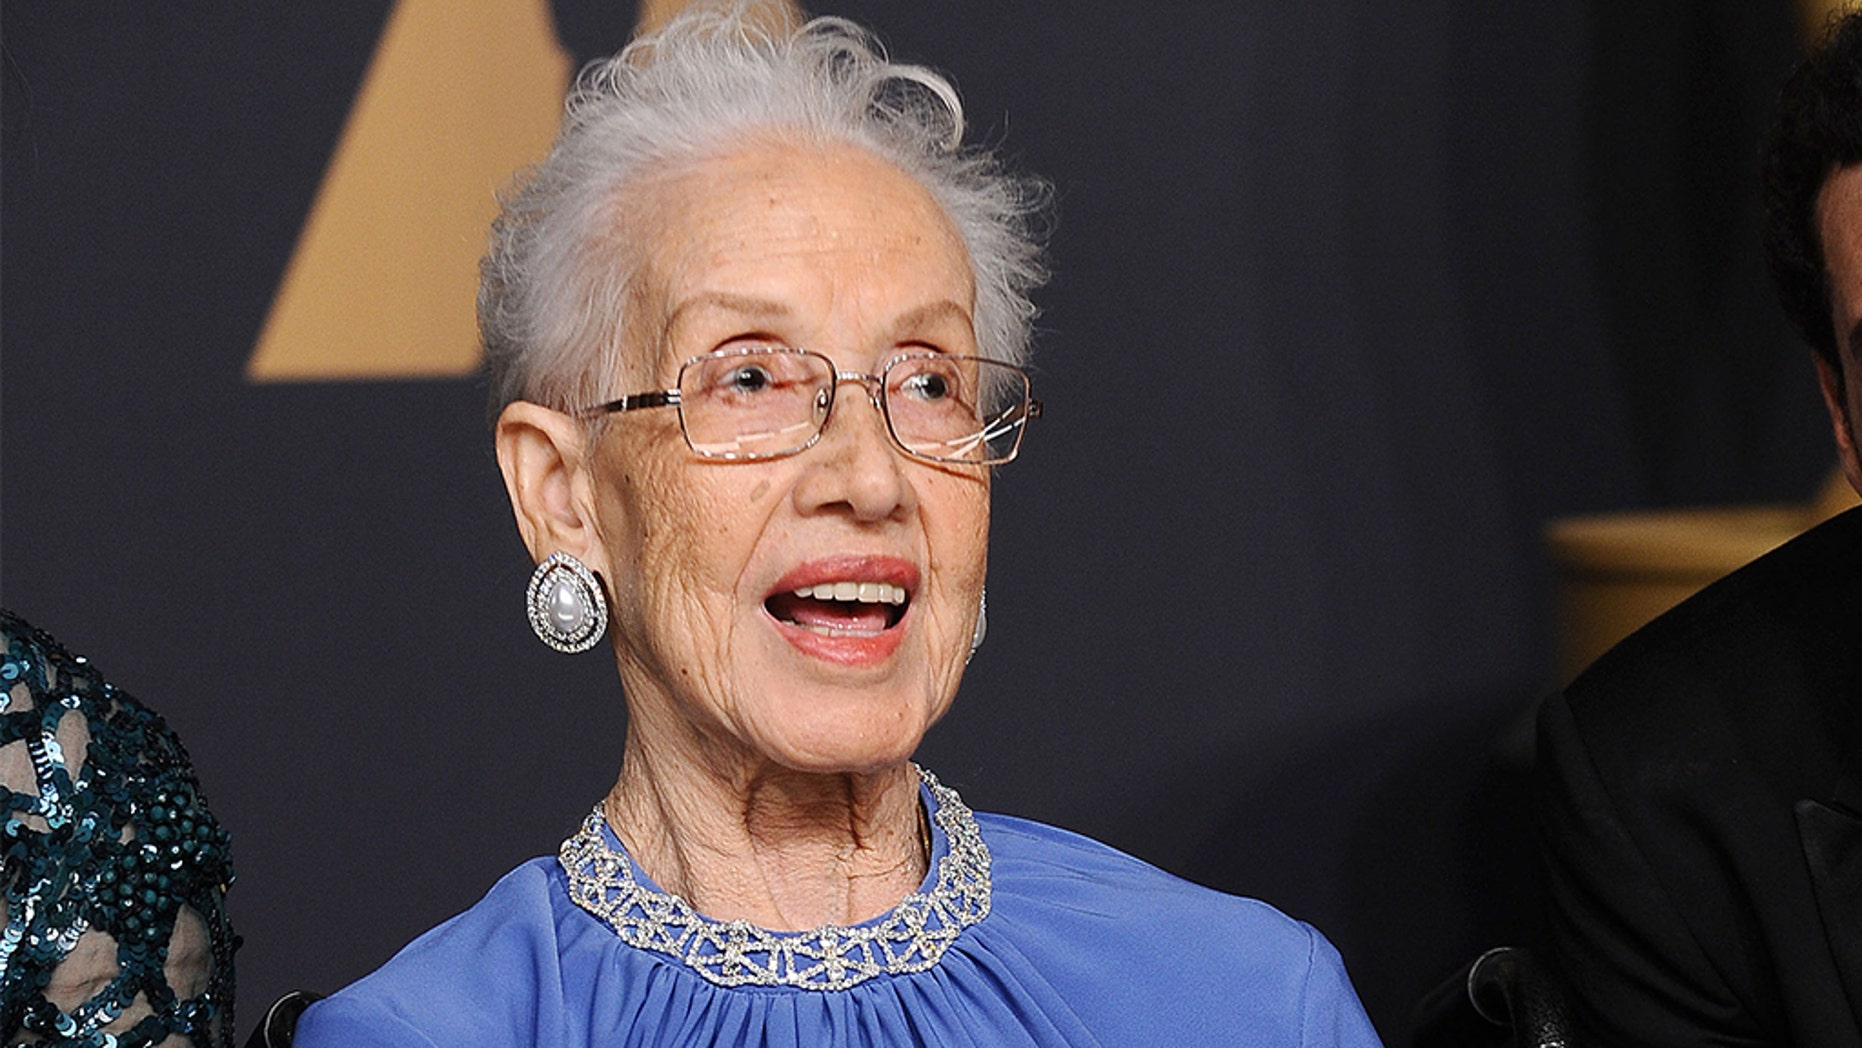 NASA renamed its Independent Verification and Validation Facility in West Virginia in honor of Katherine Johnson.